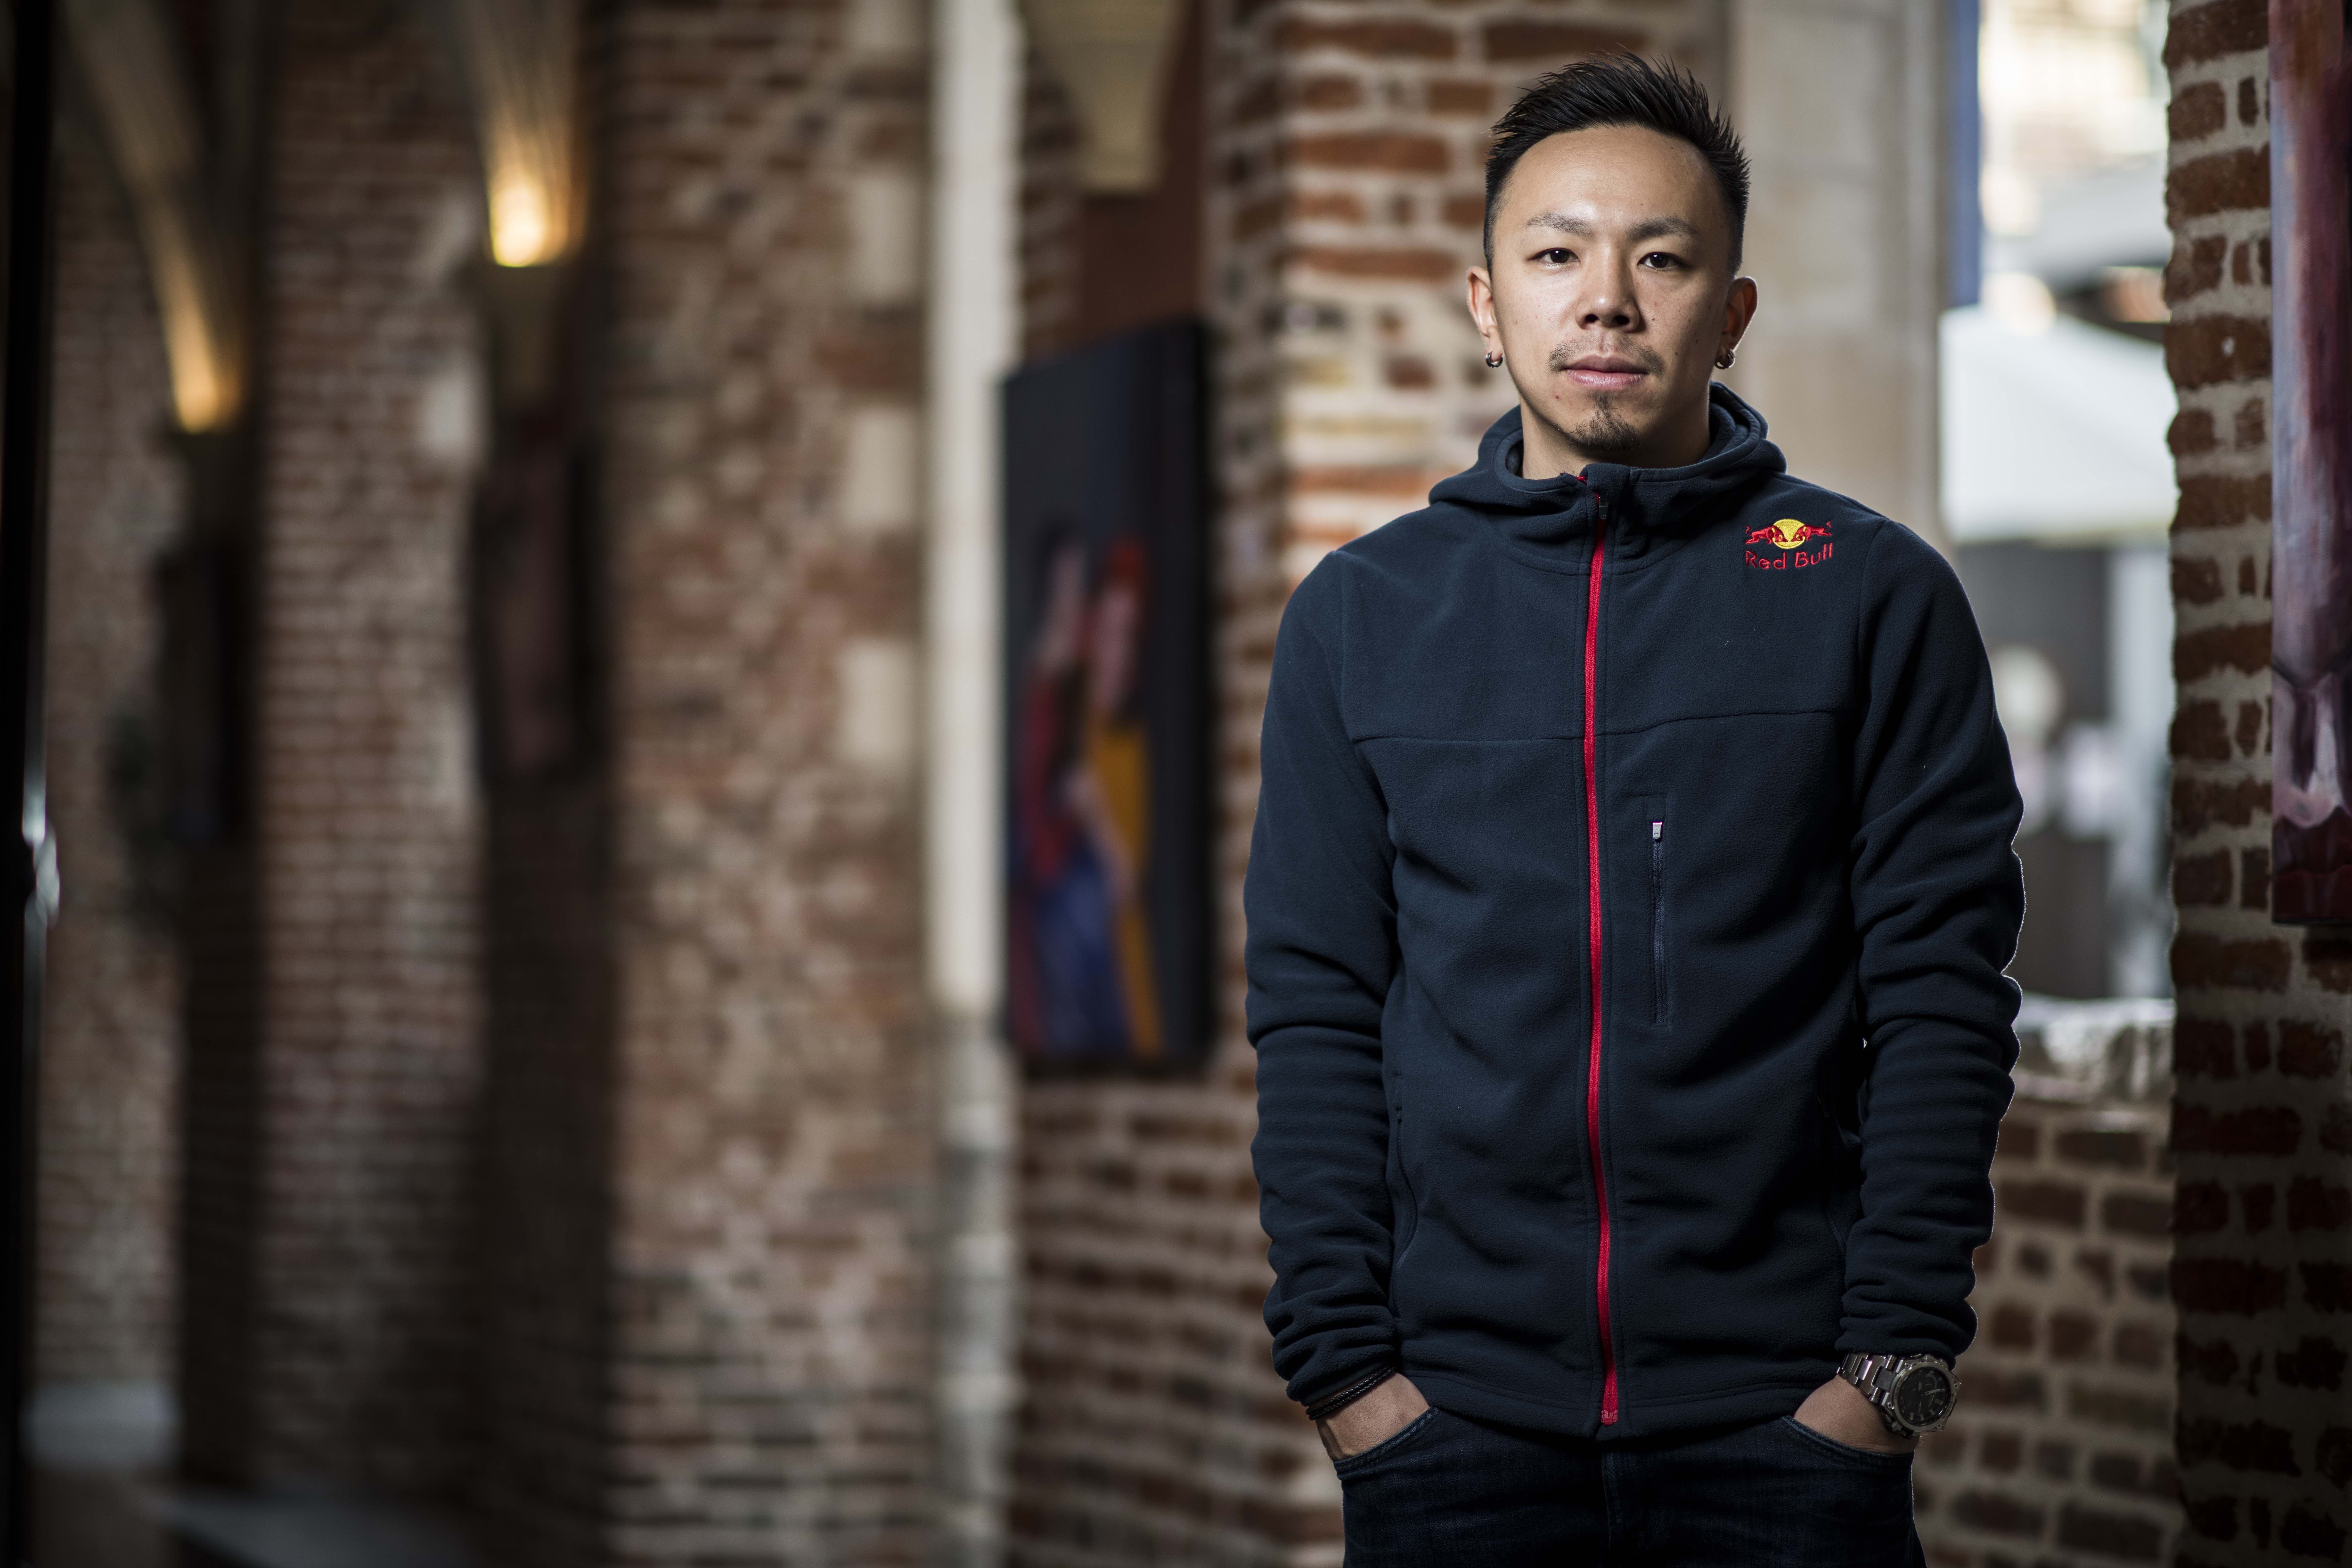 Taisuke posing for a Portrait in the Hotel Couvent des Minimes in Lille, France during the Europe Red Bull Allstar Tour, February 22nd 2018.